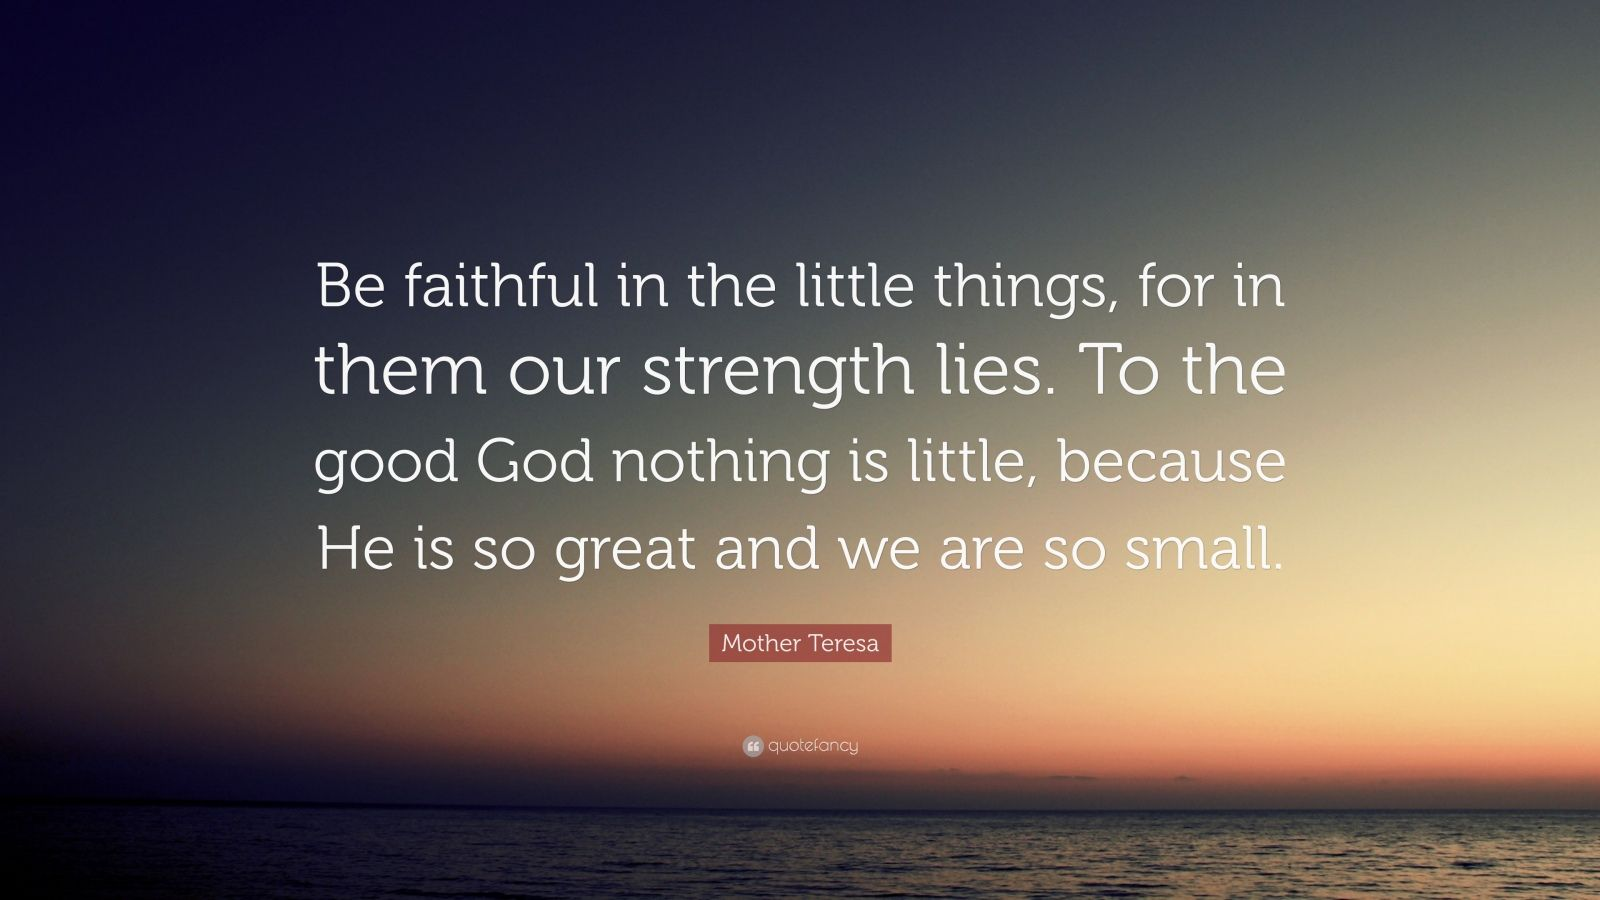 """Mother Teresa Quote: """"Be faithful in the little things, for in them our strength lies. To the good God nothing is little, because He is so great and we are so small."""""""